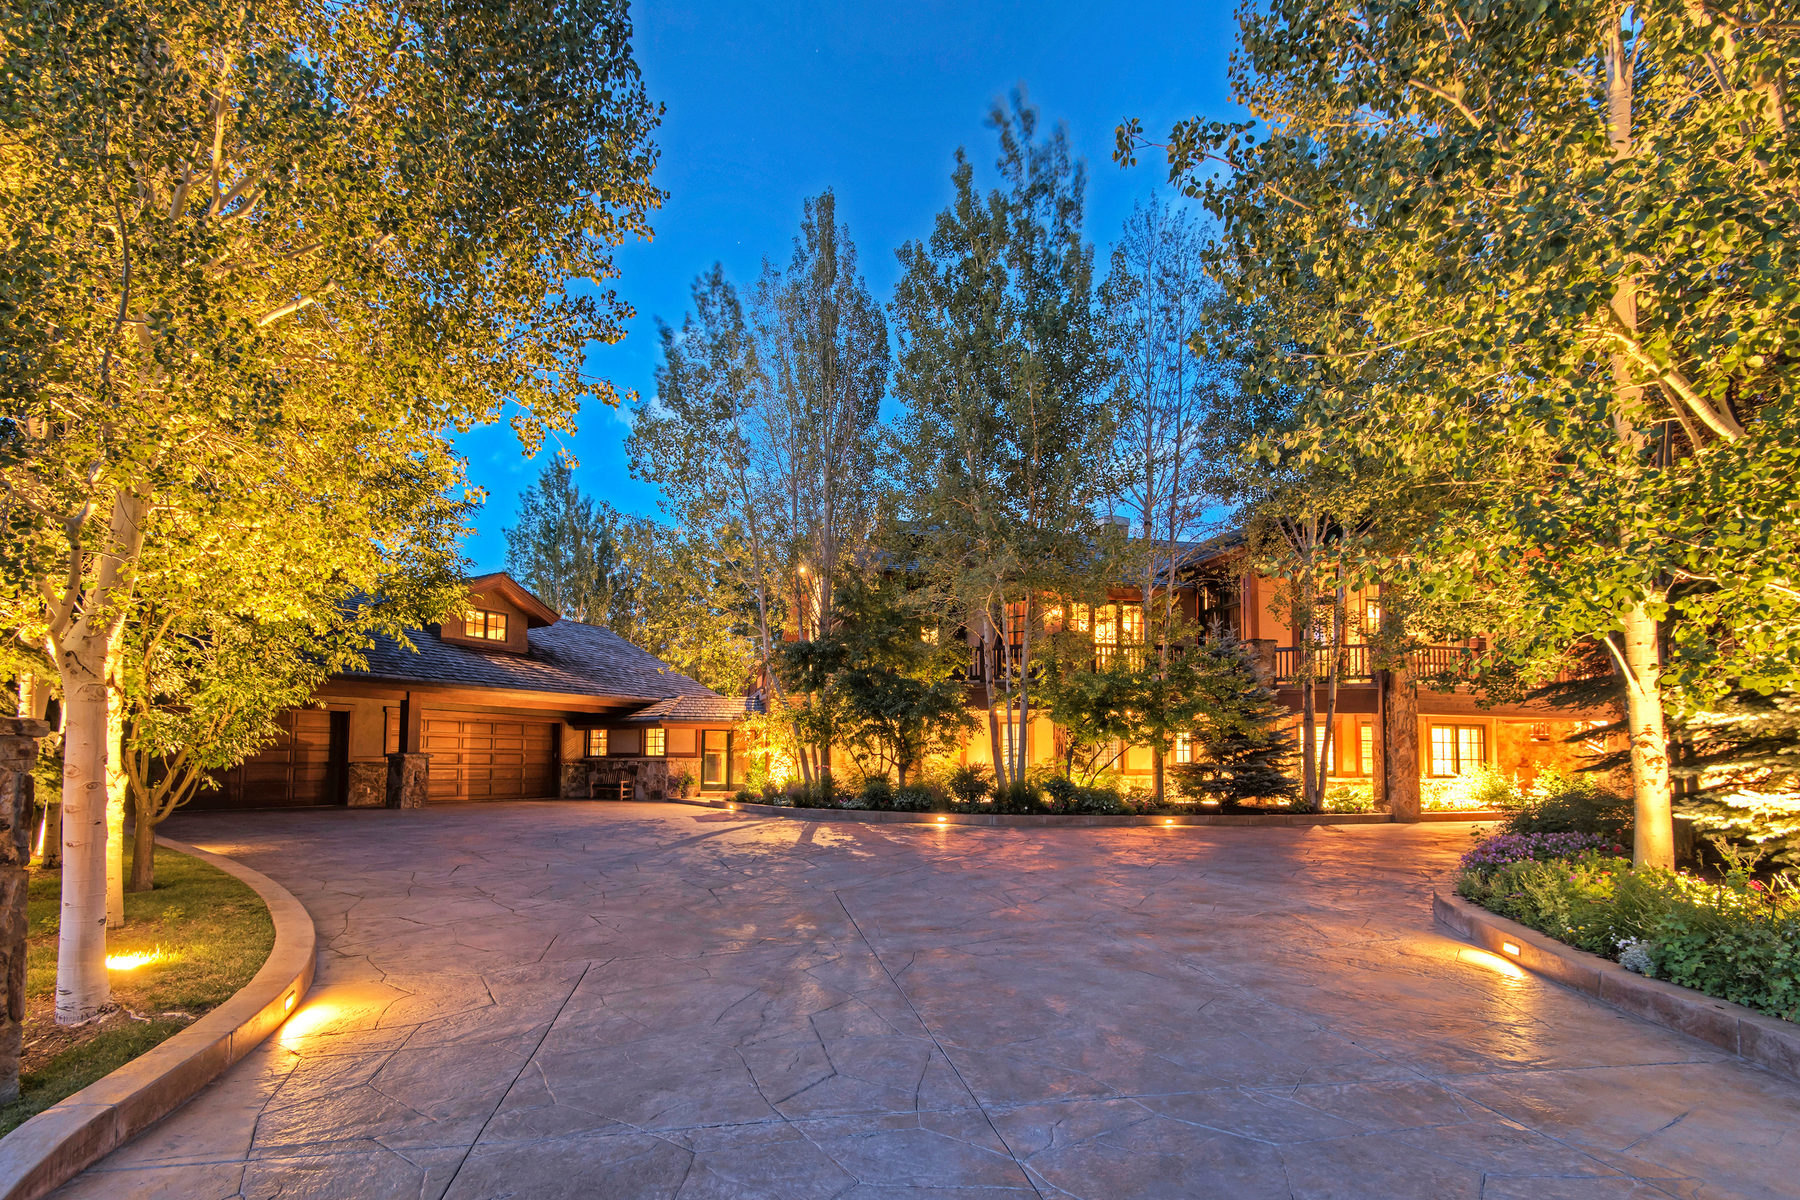 Maison unifamiliale pour l Vente à Stunning Park Meadows Estate on over 2.5 Acres 2300 Lucky John Dr Park City, Utah, 84060 États-Unis